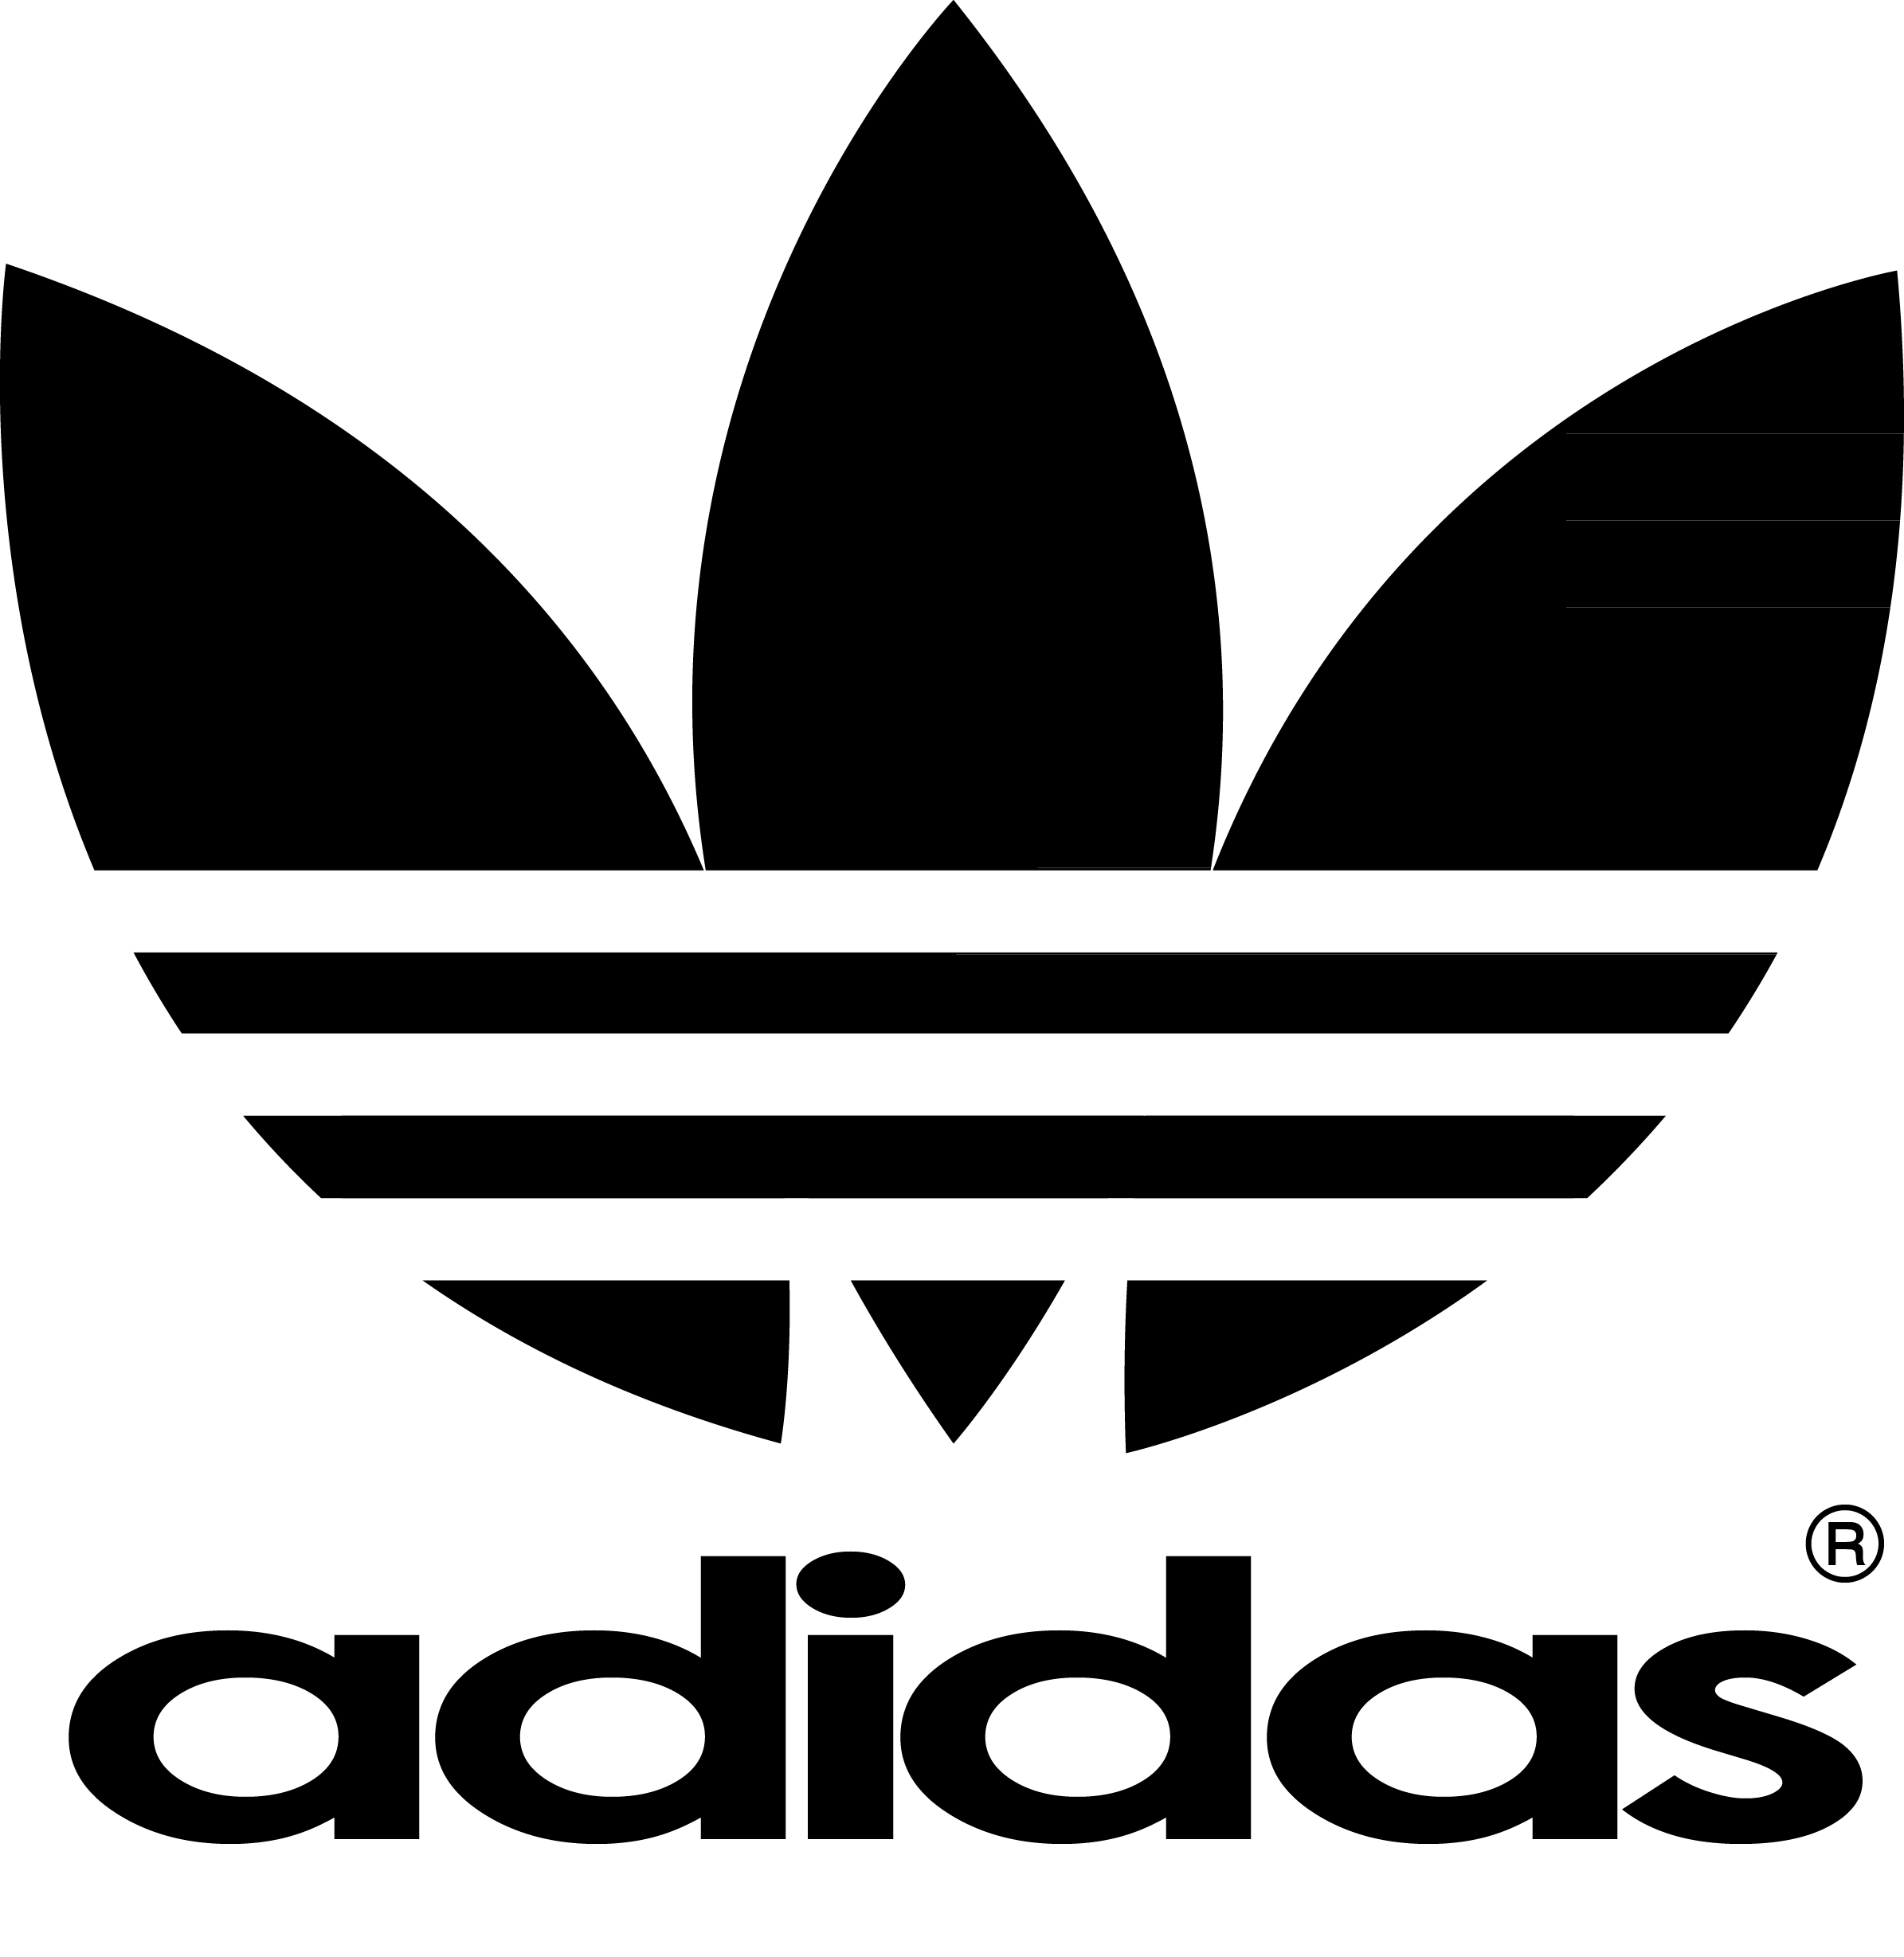 Adidas Logo | Logo designs | Pinterest | Adidas logo and Logos